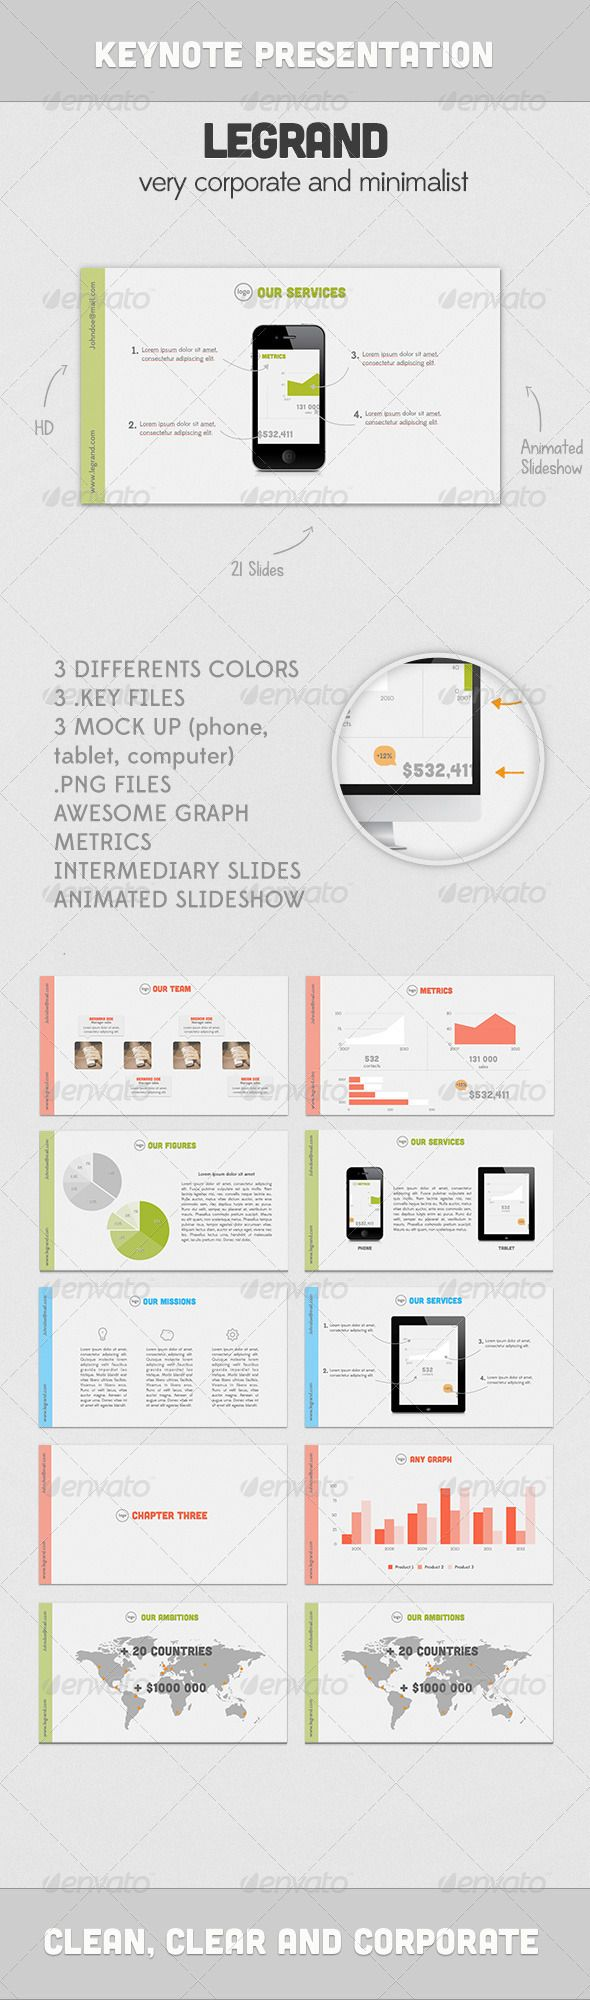 124 best keynote themes templates images on pinterest keynote legrand presentation presentation templatespresentation slidespresentation designkeynote pronofoot35fo Choice Image